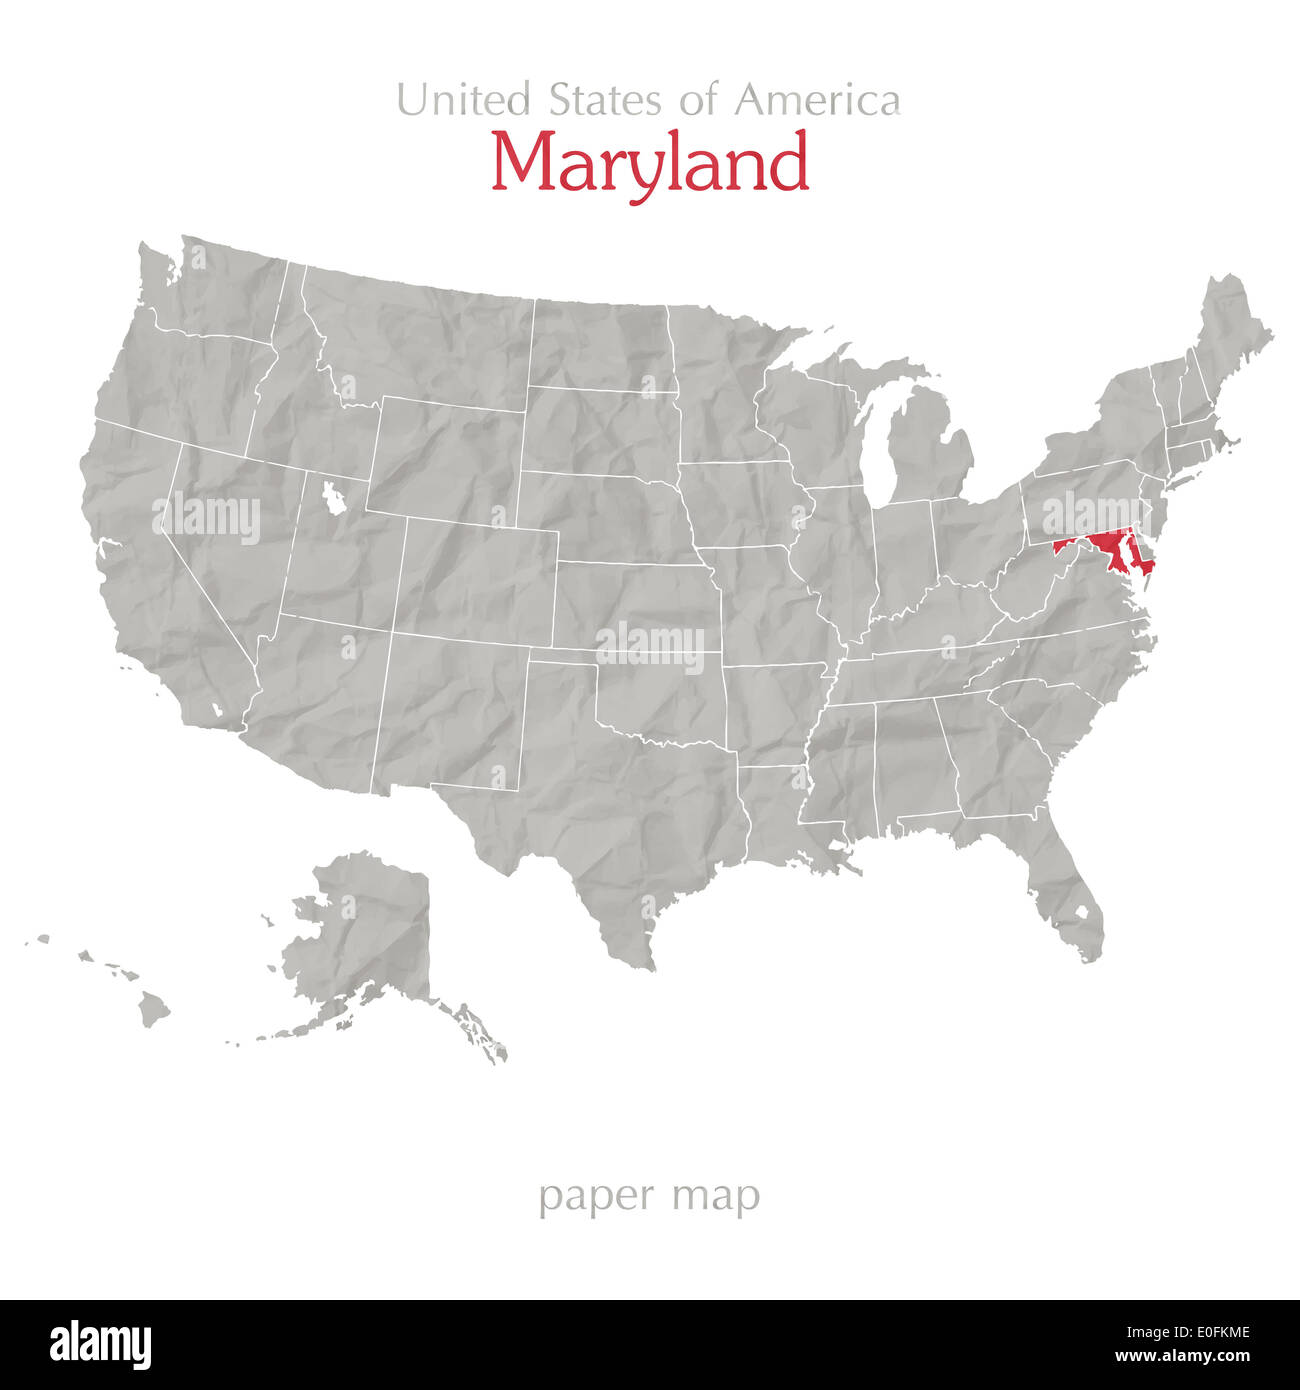 United States of America map and Maryland state territory on ...